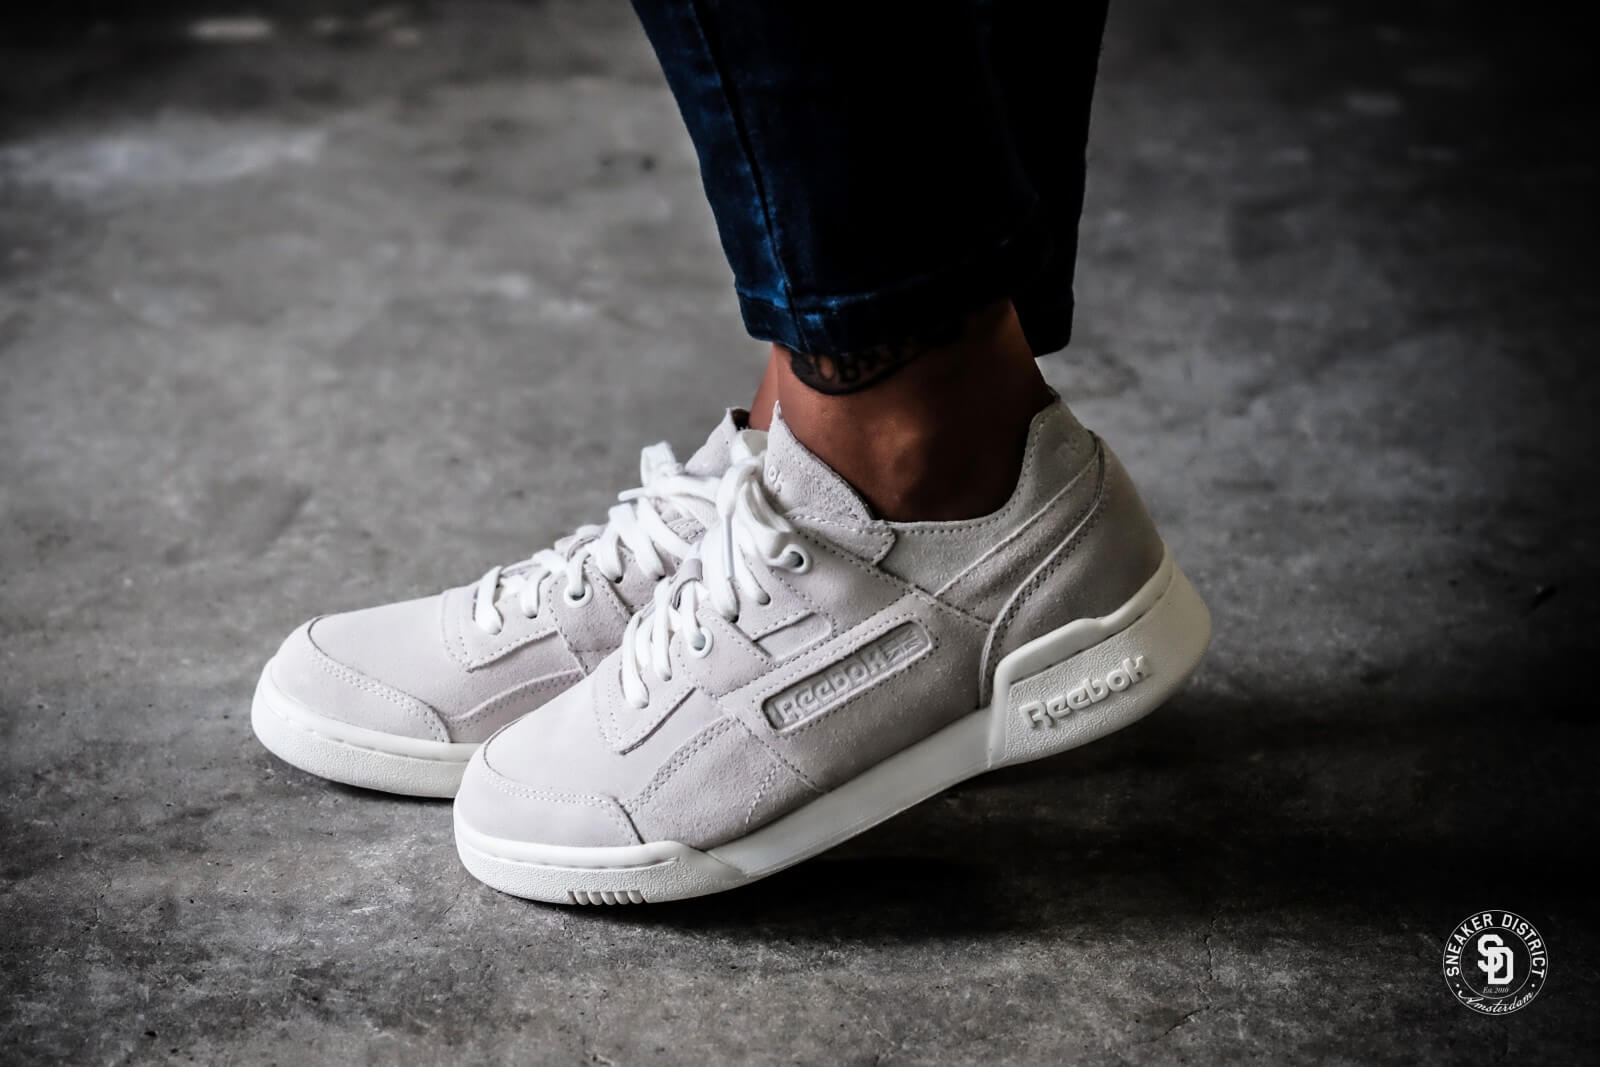 find great online outlet professional Workout Lo Plus Reebok Classics clearance outlet store cheap sale professional jLUHoA5Gy3